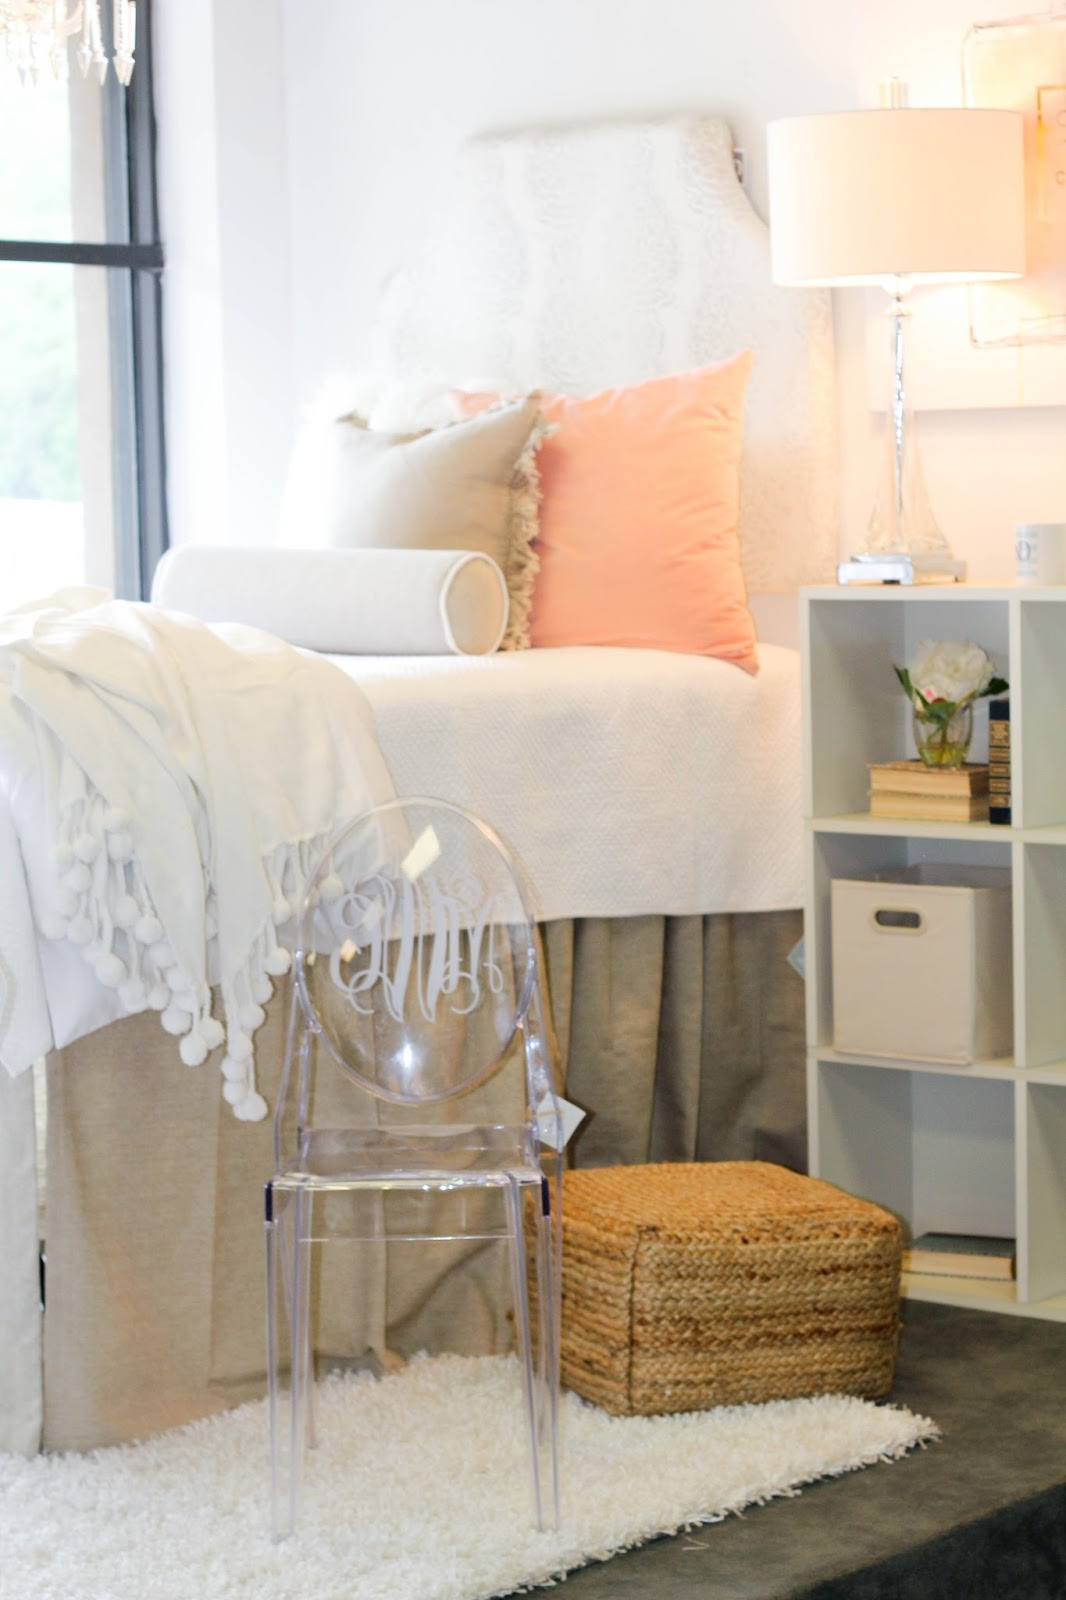 Prep In Your Step Dorm Room Design With Not Just Dorms